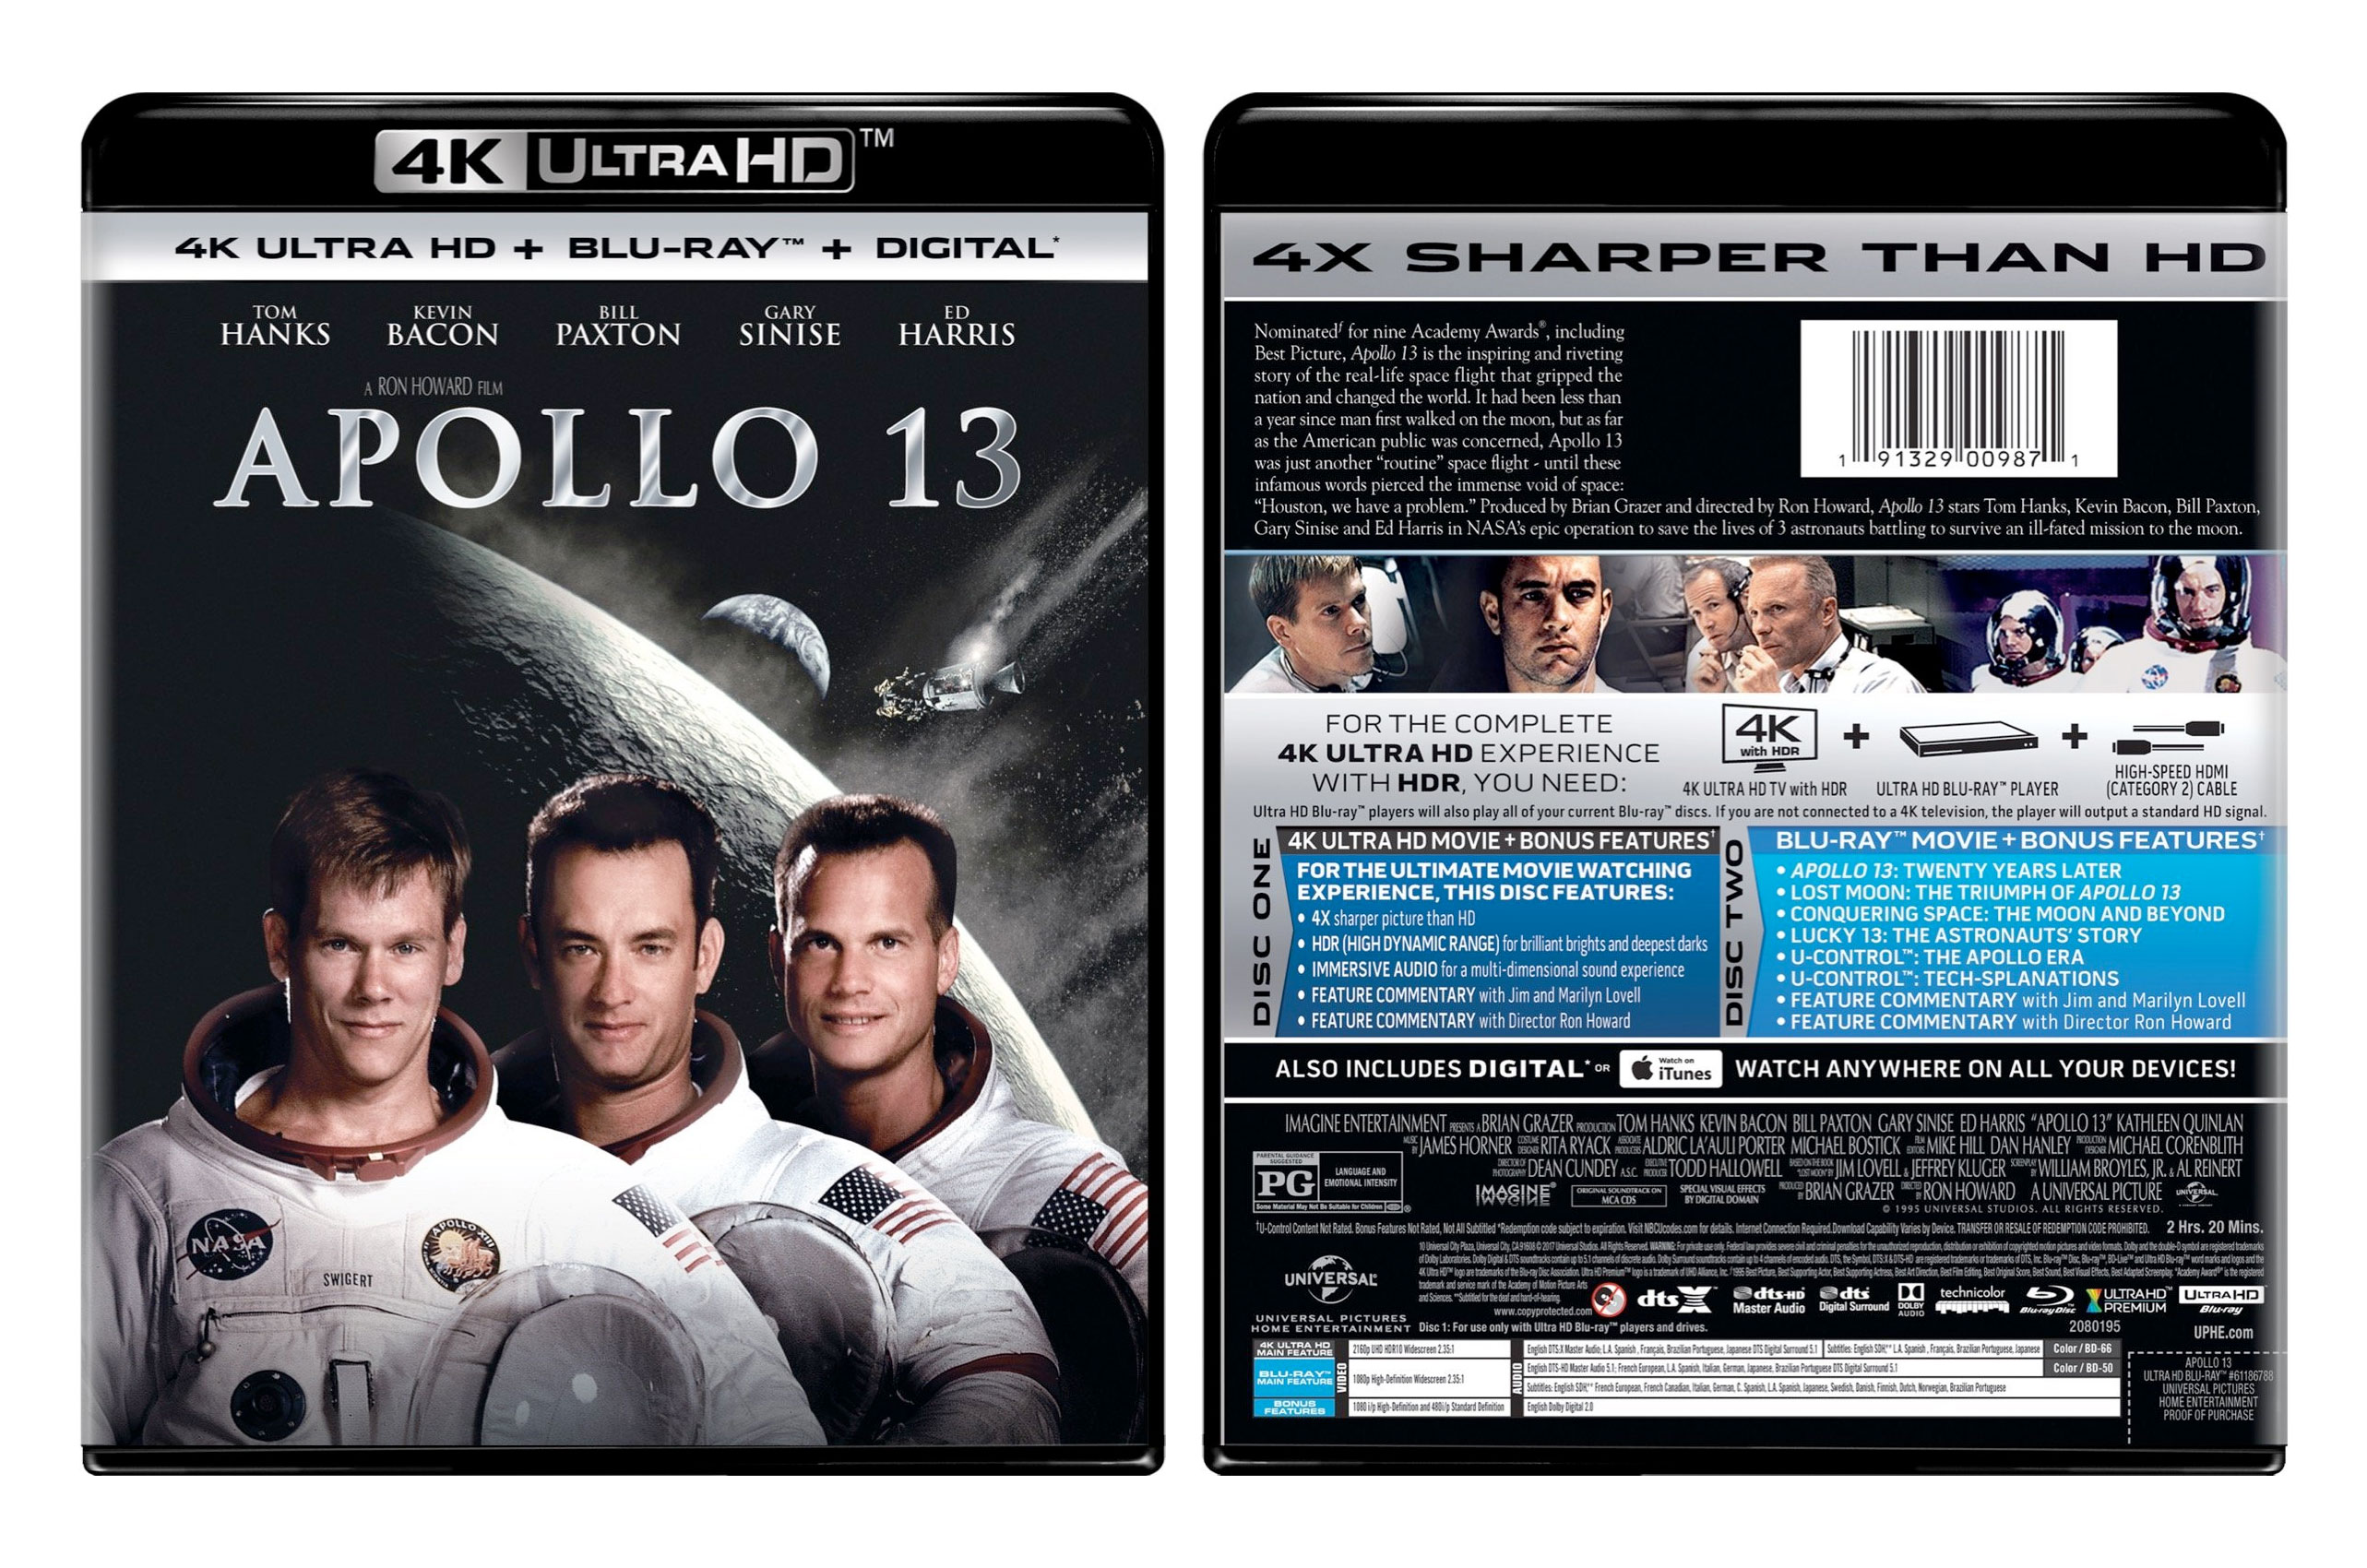 Apollo 13 (Universal 4K Ultra HD + Blu-ray) - collectSPACE: Messages